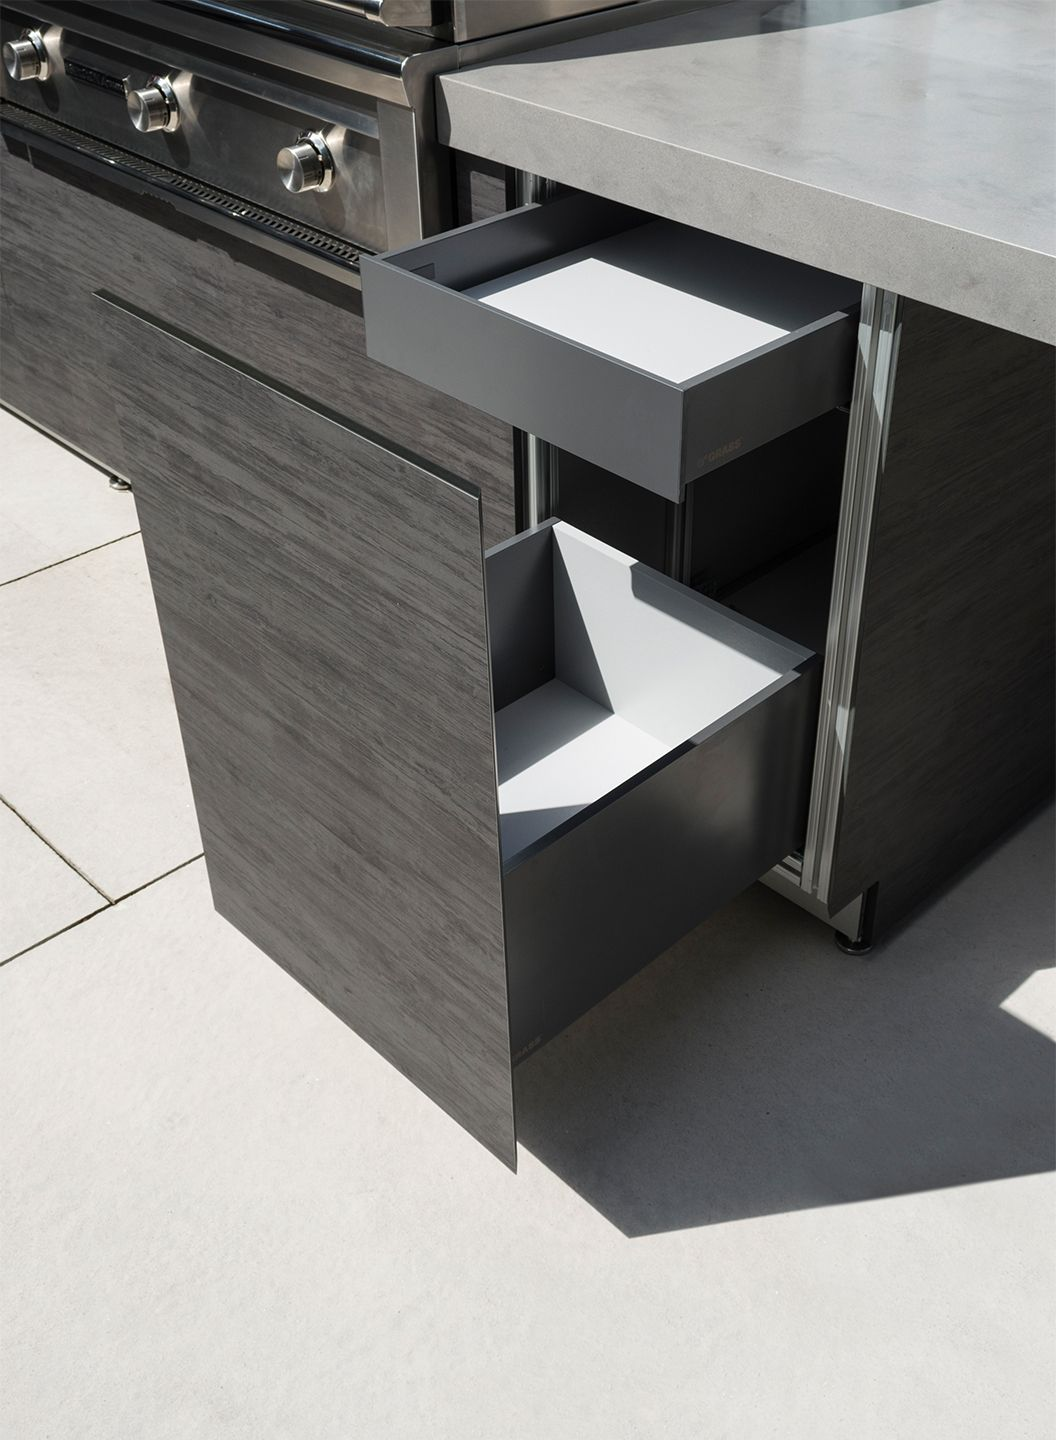 Built In Storage Bin Drawer With Inset For Grilling Equipment Outdoor Kitchen Cabinetry Canada Outdoor Kitchen Contemporary Kitchen Contemporary Outdoor